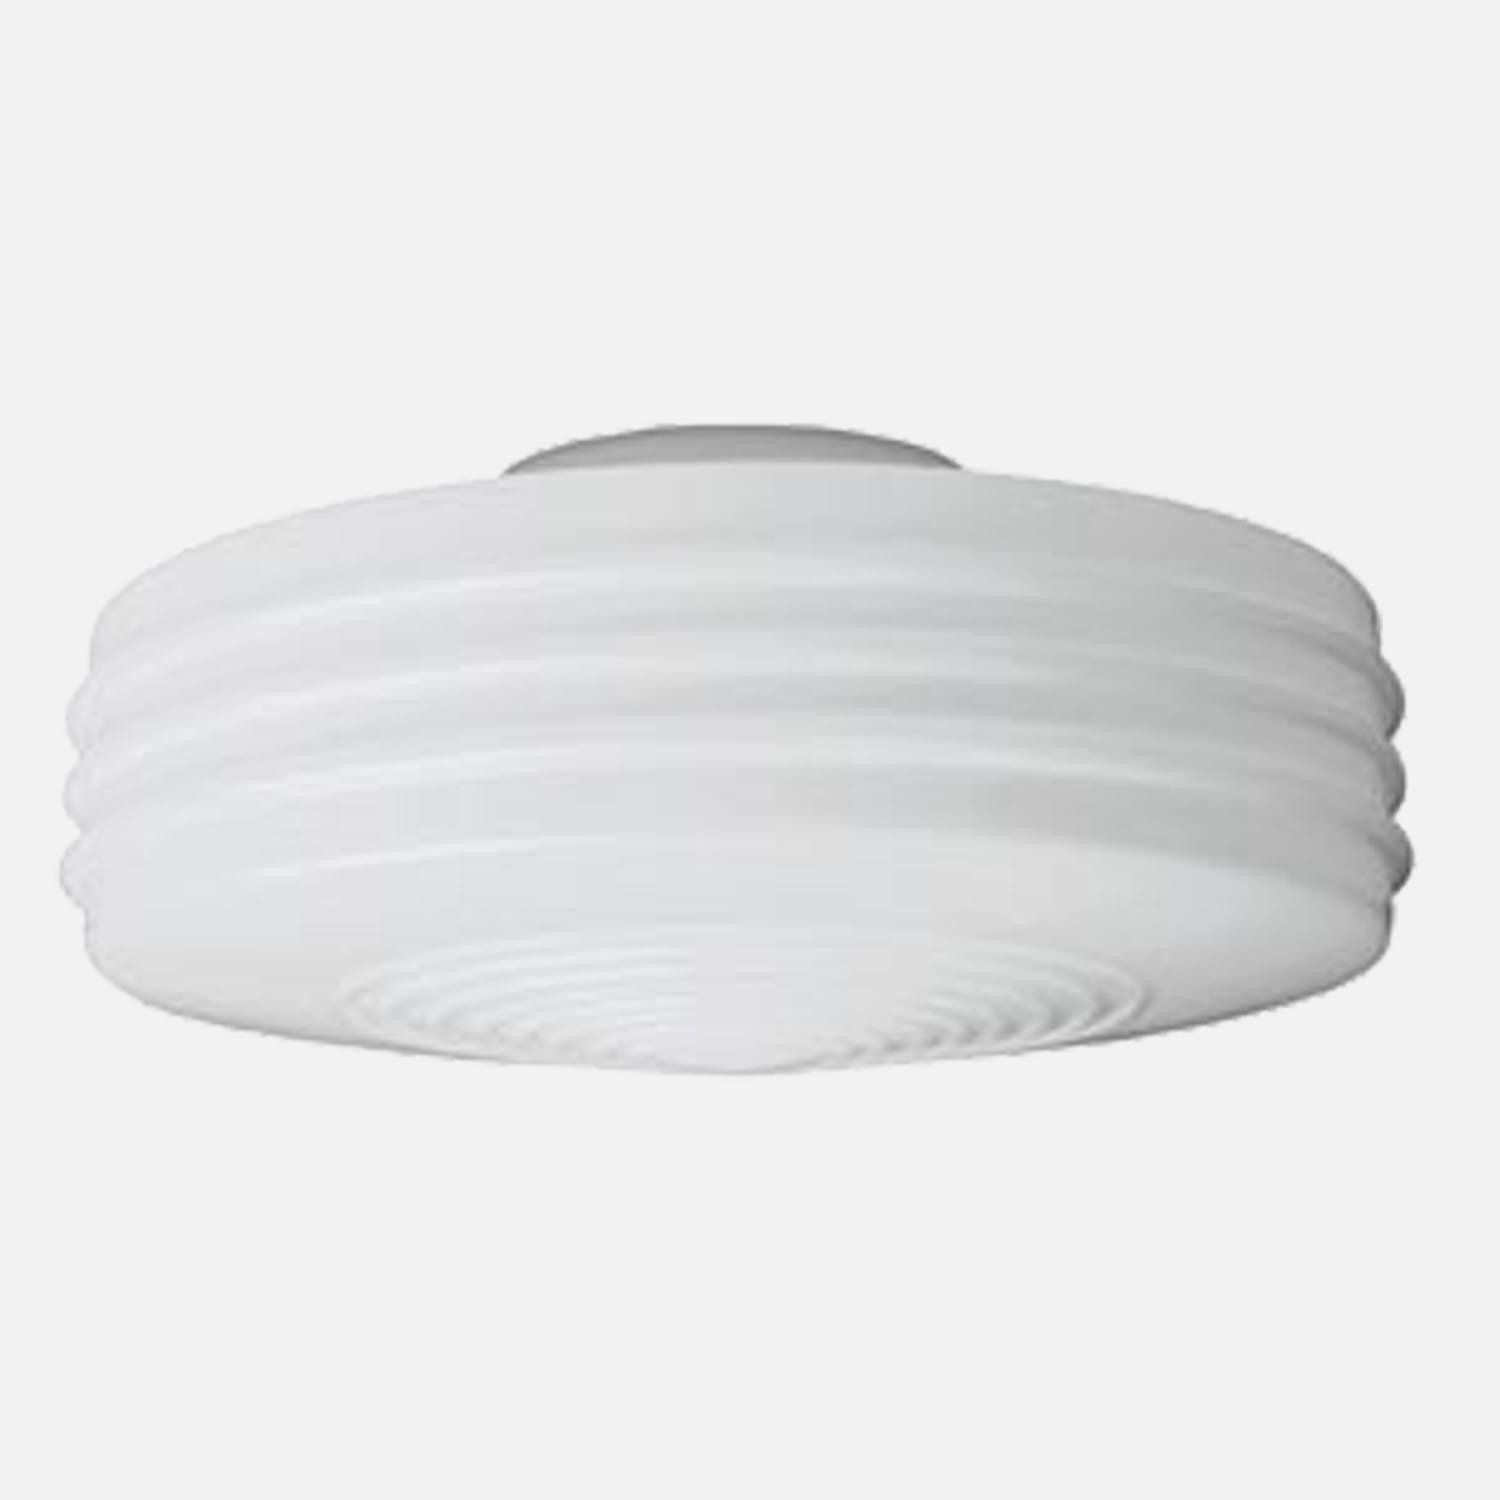 Art deco hallway lights  Fluted Deco Shade  Opal  Products  Pinterest  Flutes and Products